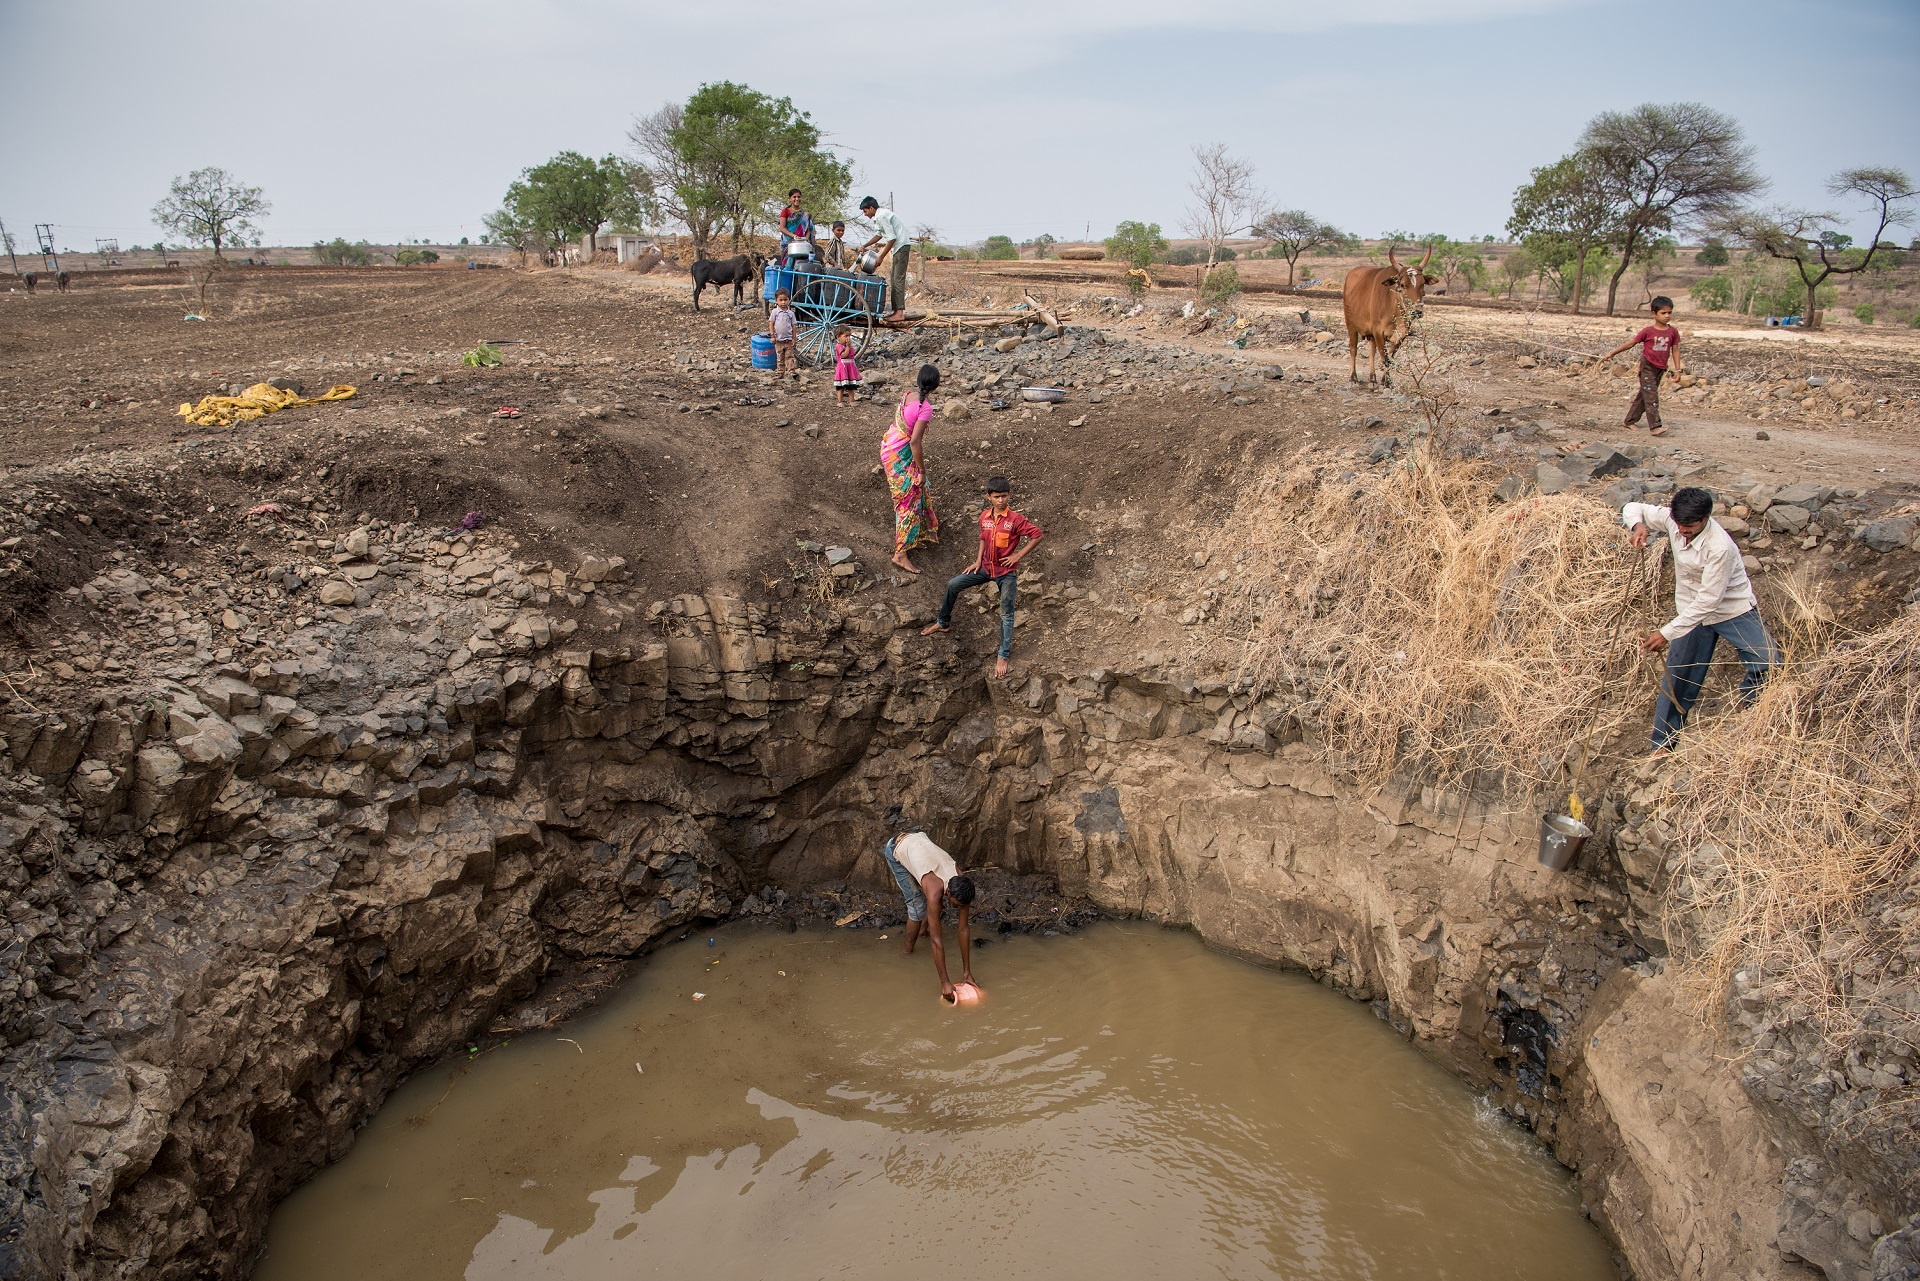 Villagers collect water in India's drought-prone Beed district.